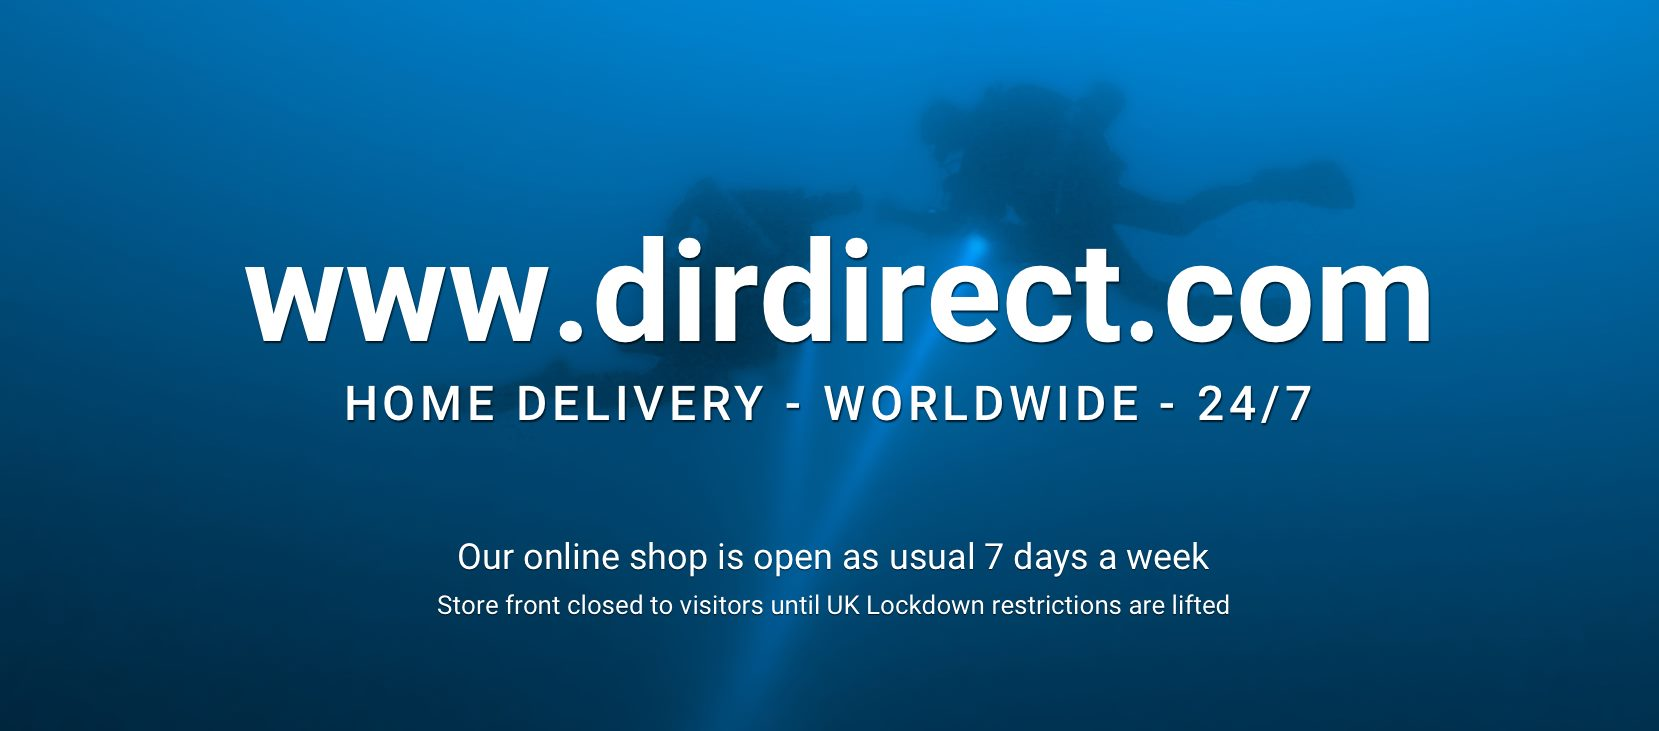 Shop From Dirdirect